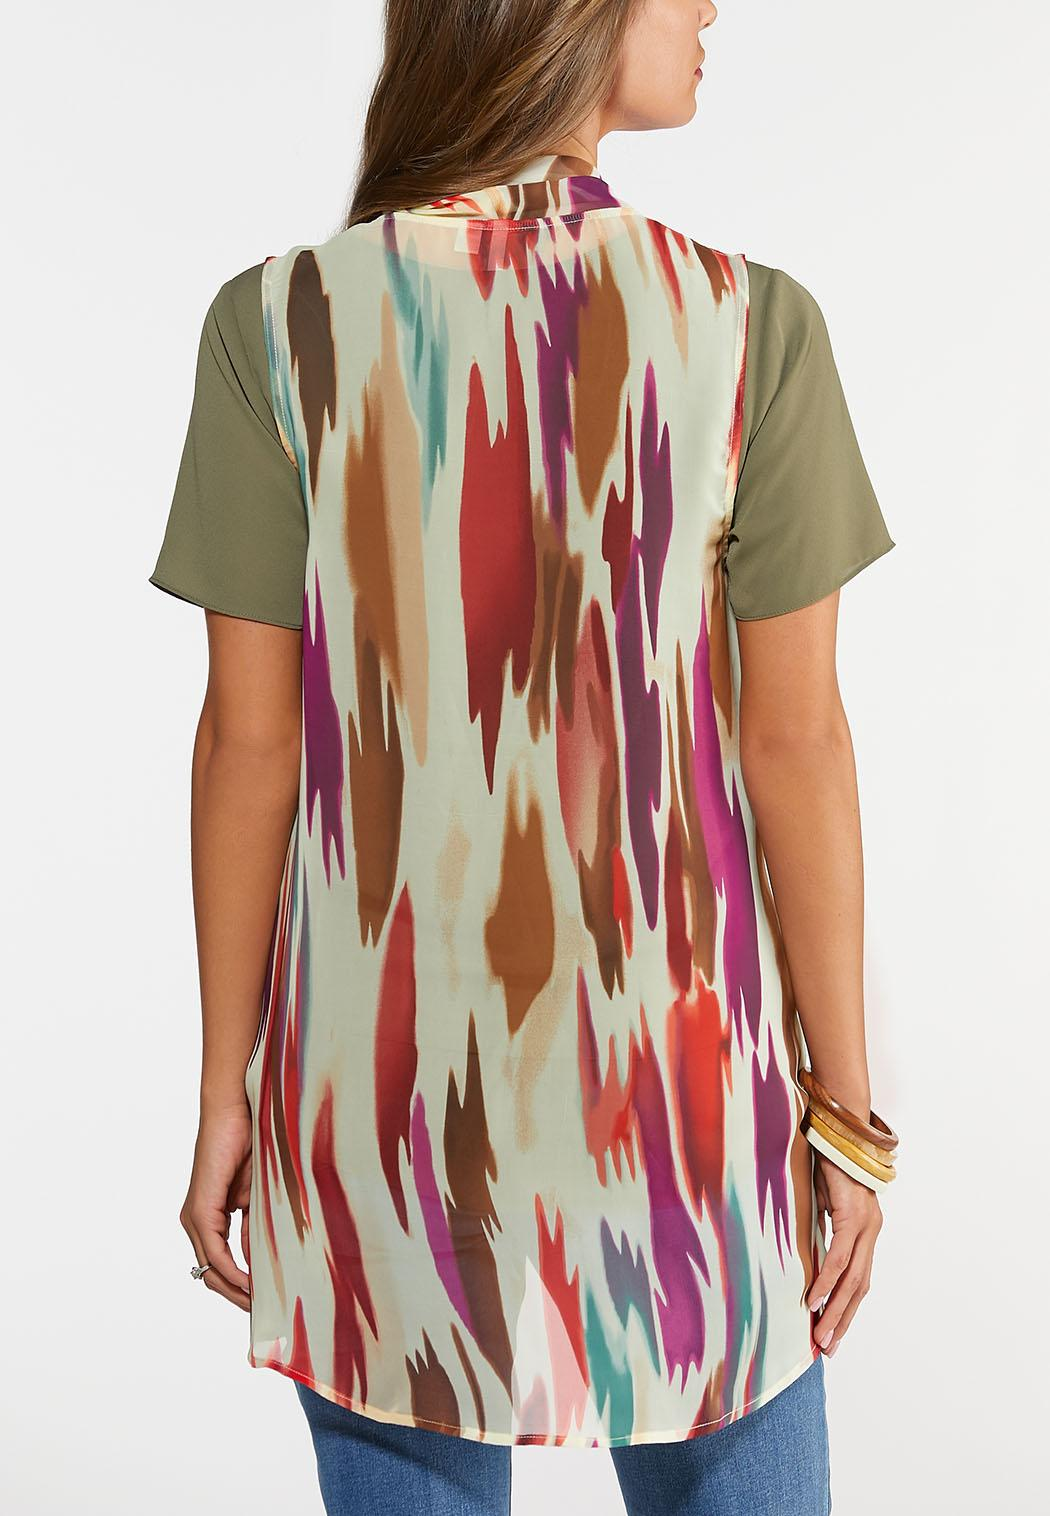 Colorful Waterfall Vest (Item #43985893)